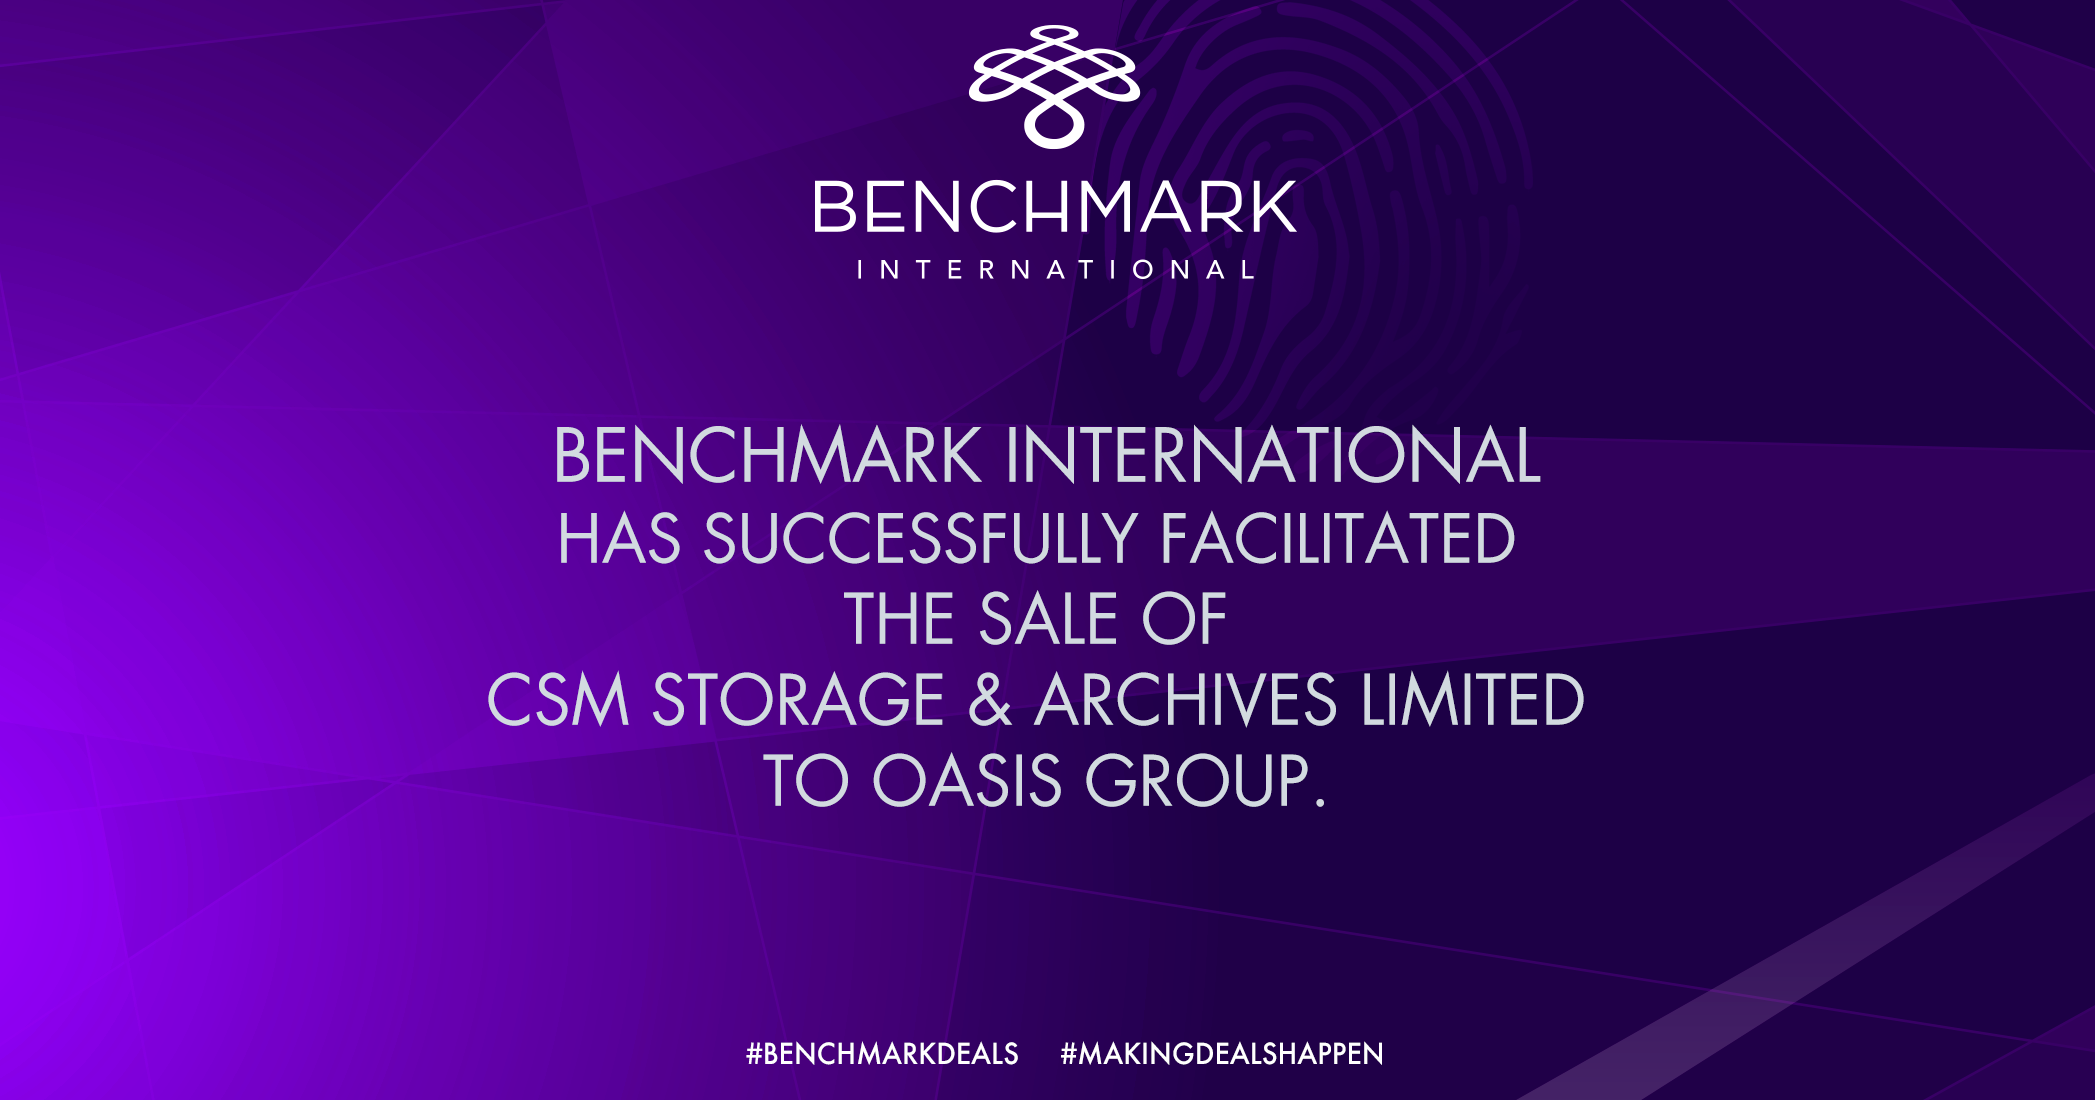 Benchmark International Has Successfully Facilitated the Sale of CSM Storage & Archives Limited to OASIS Group